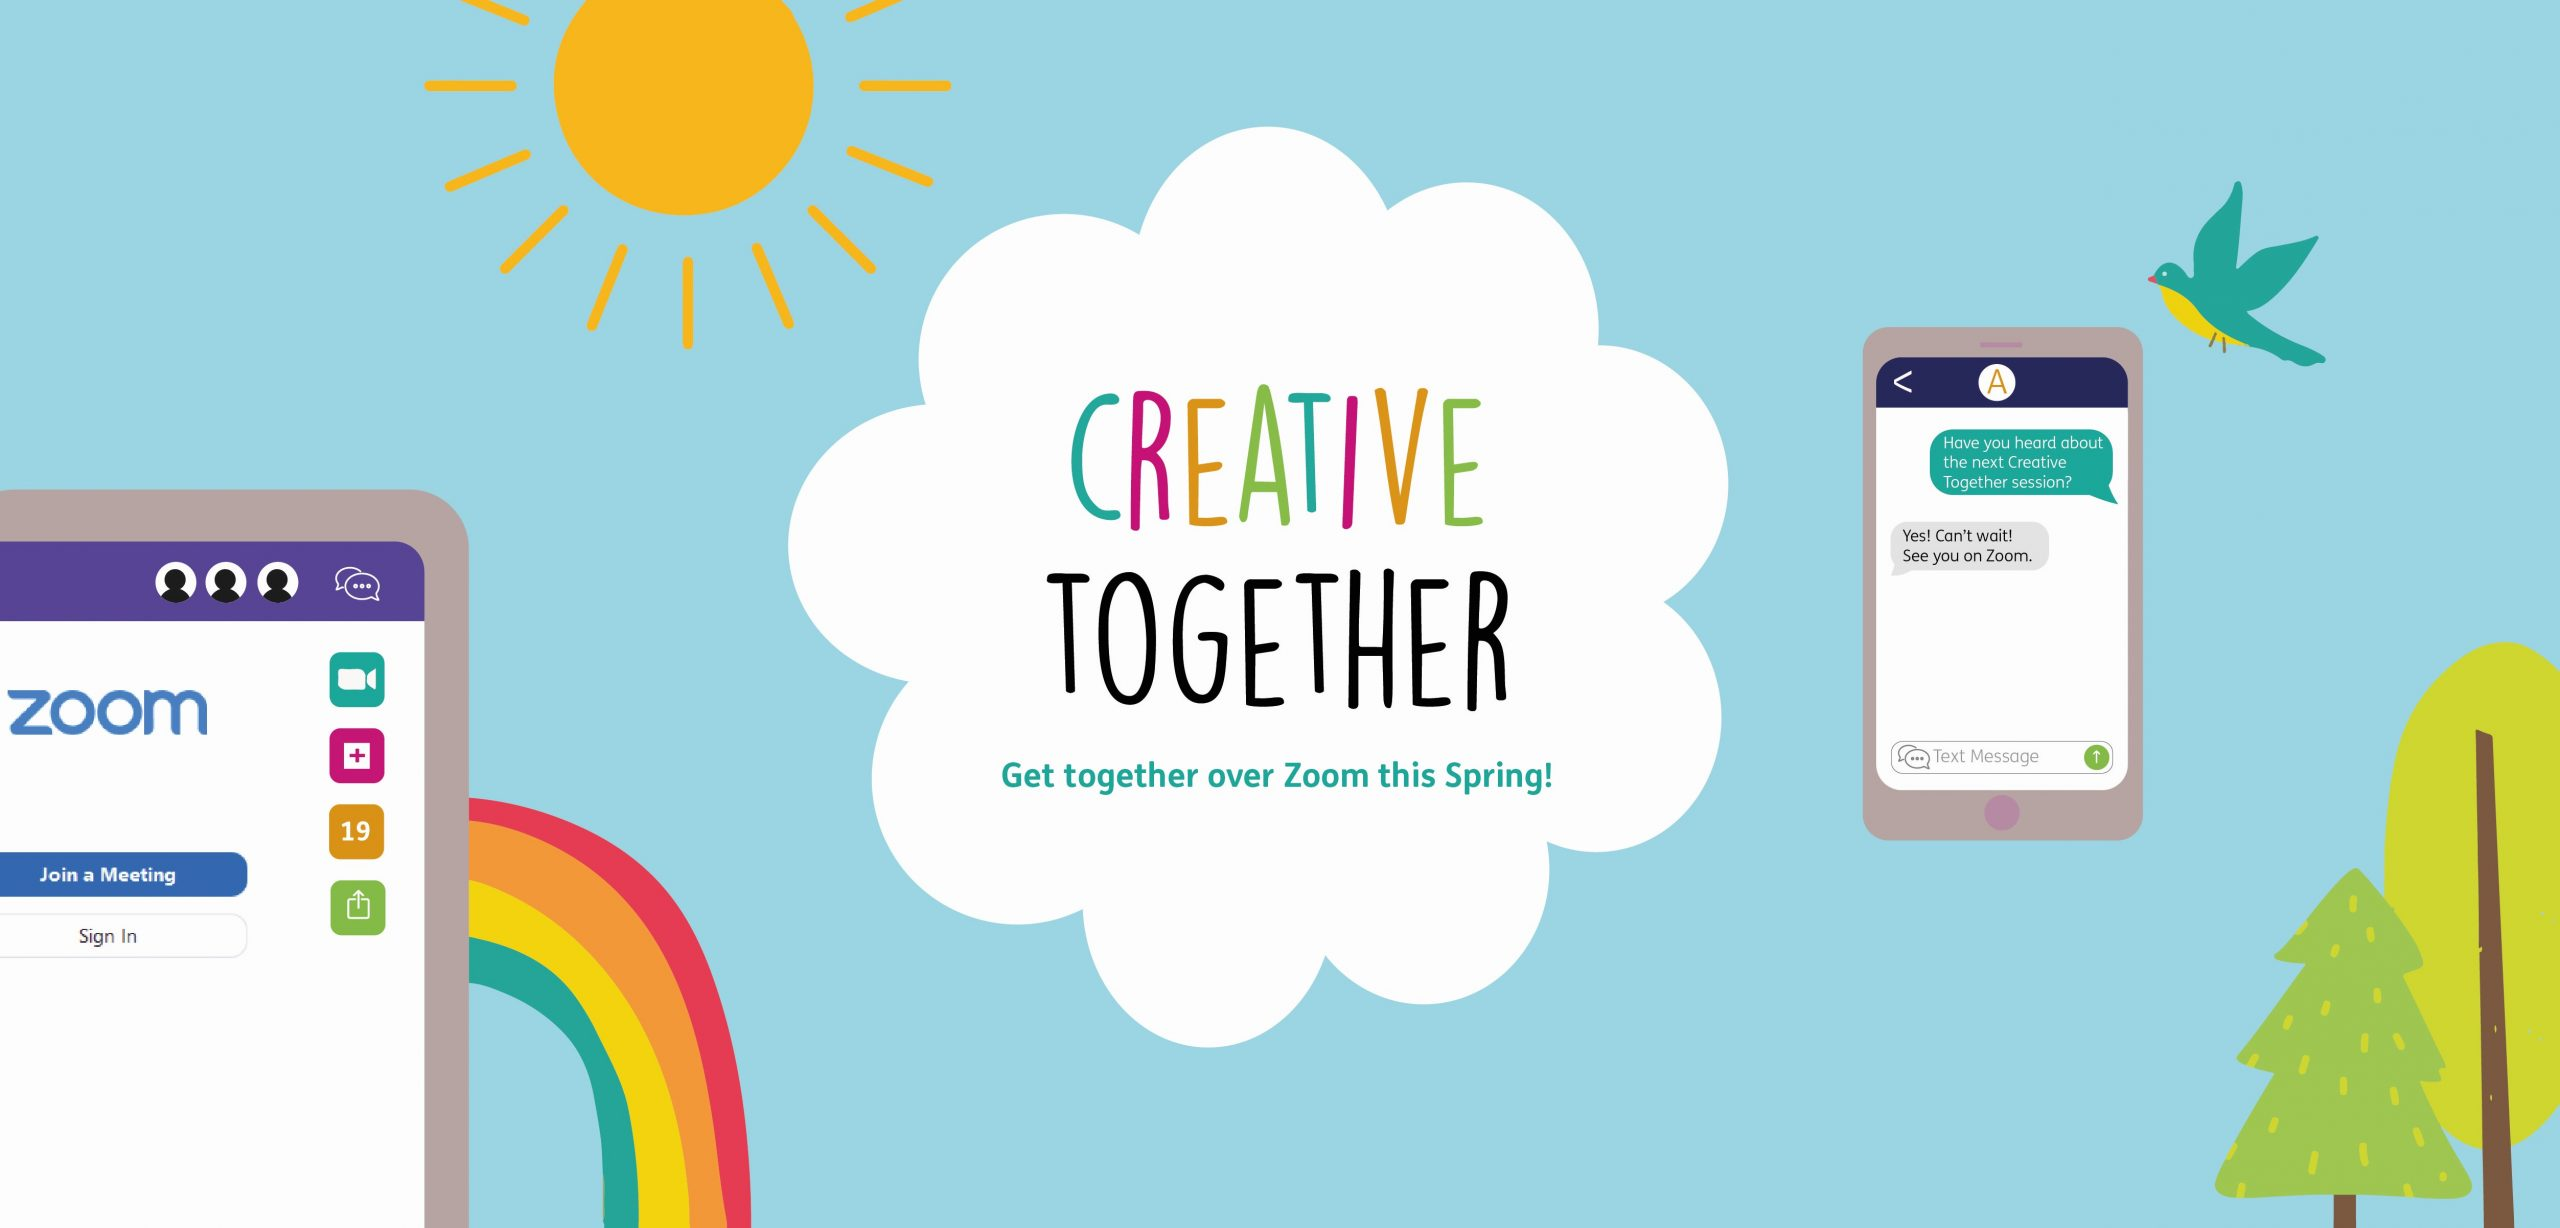 July's Creative Together Zoom Sessions